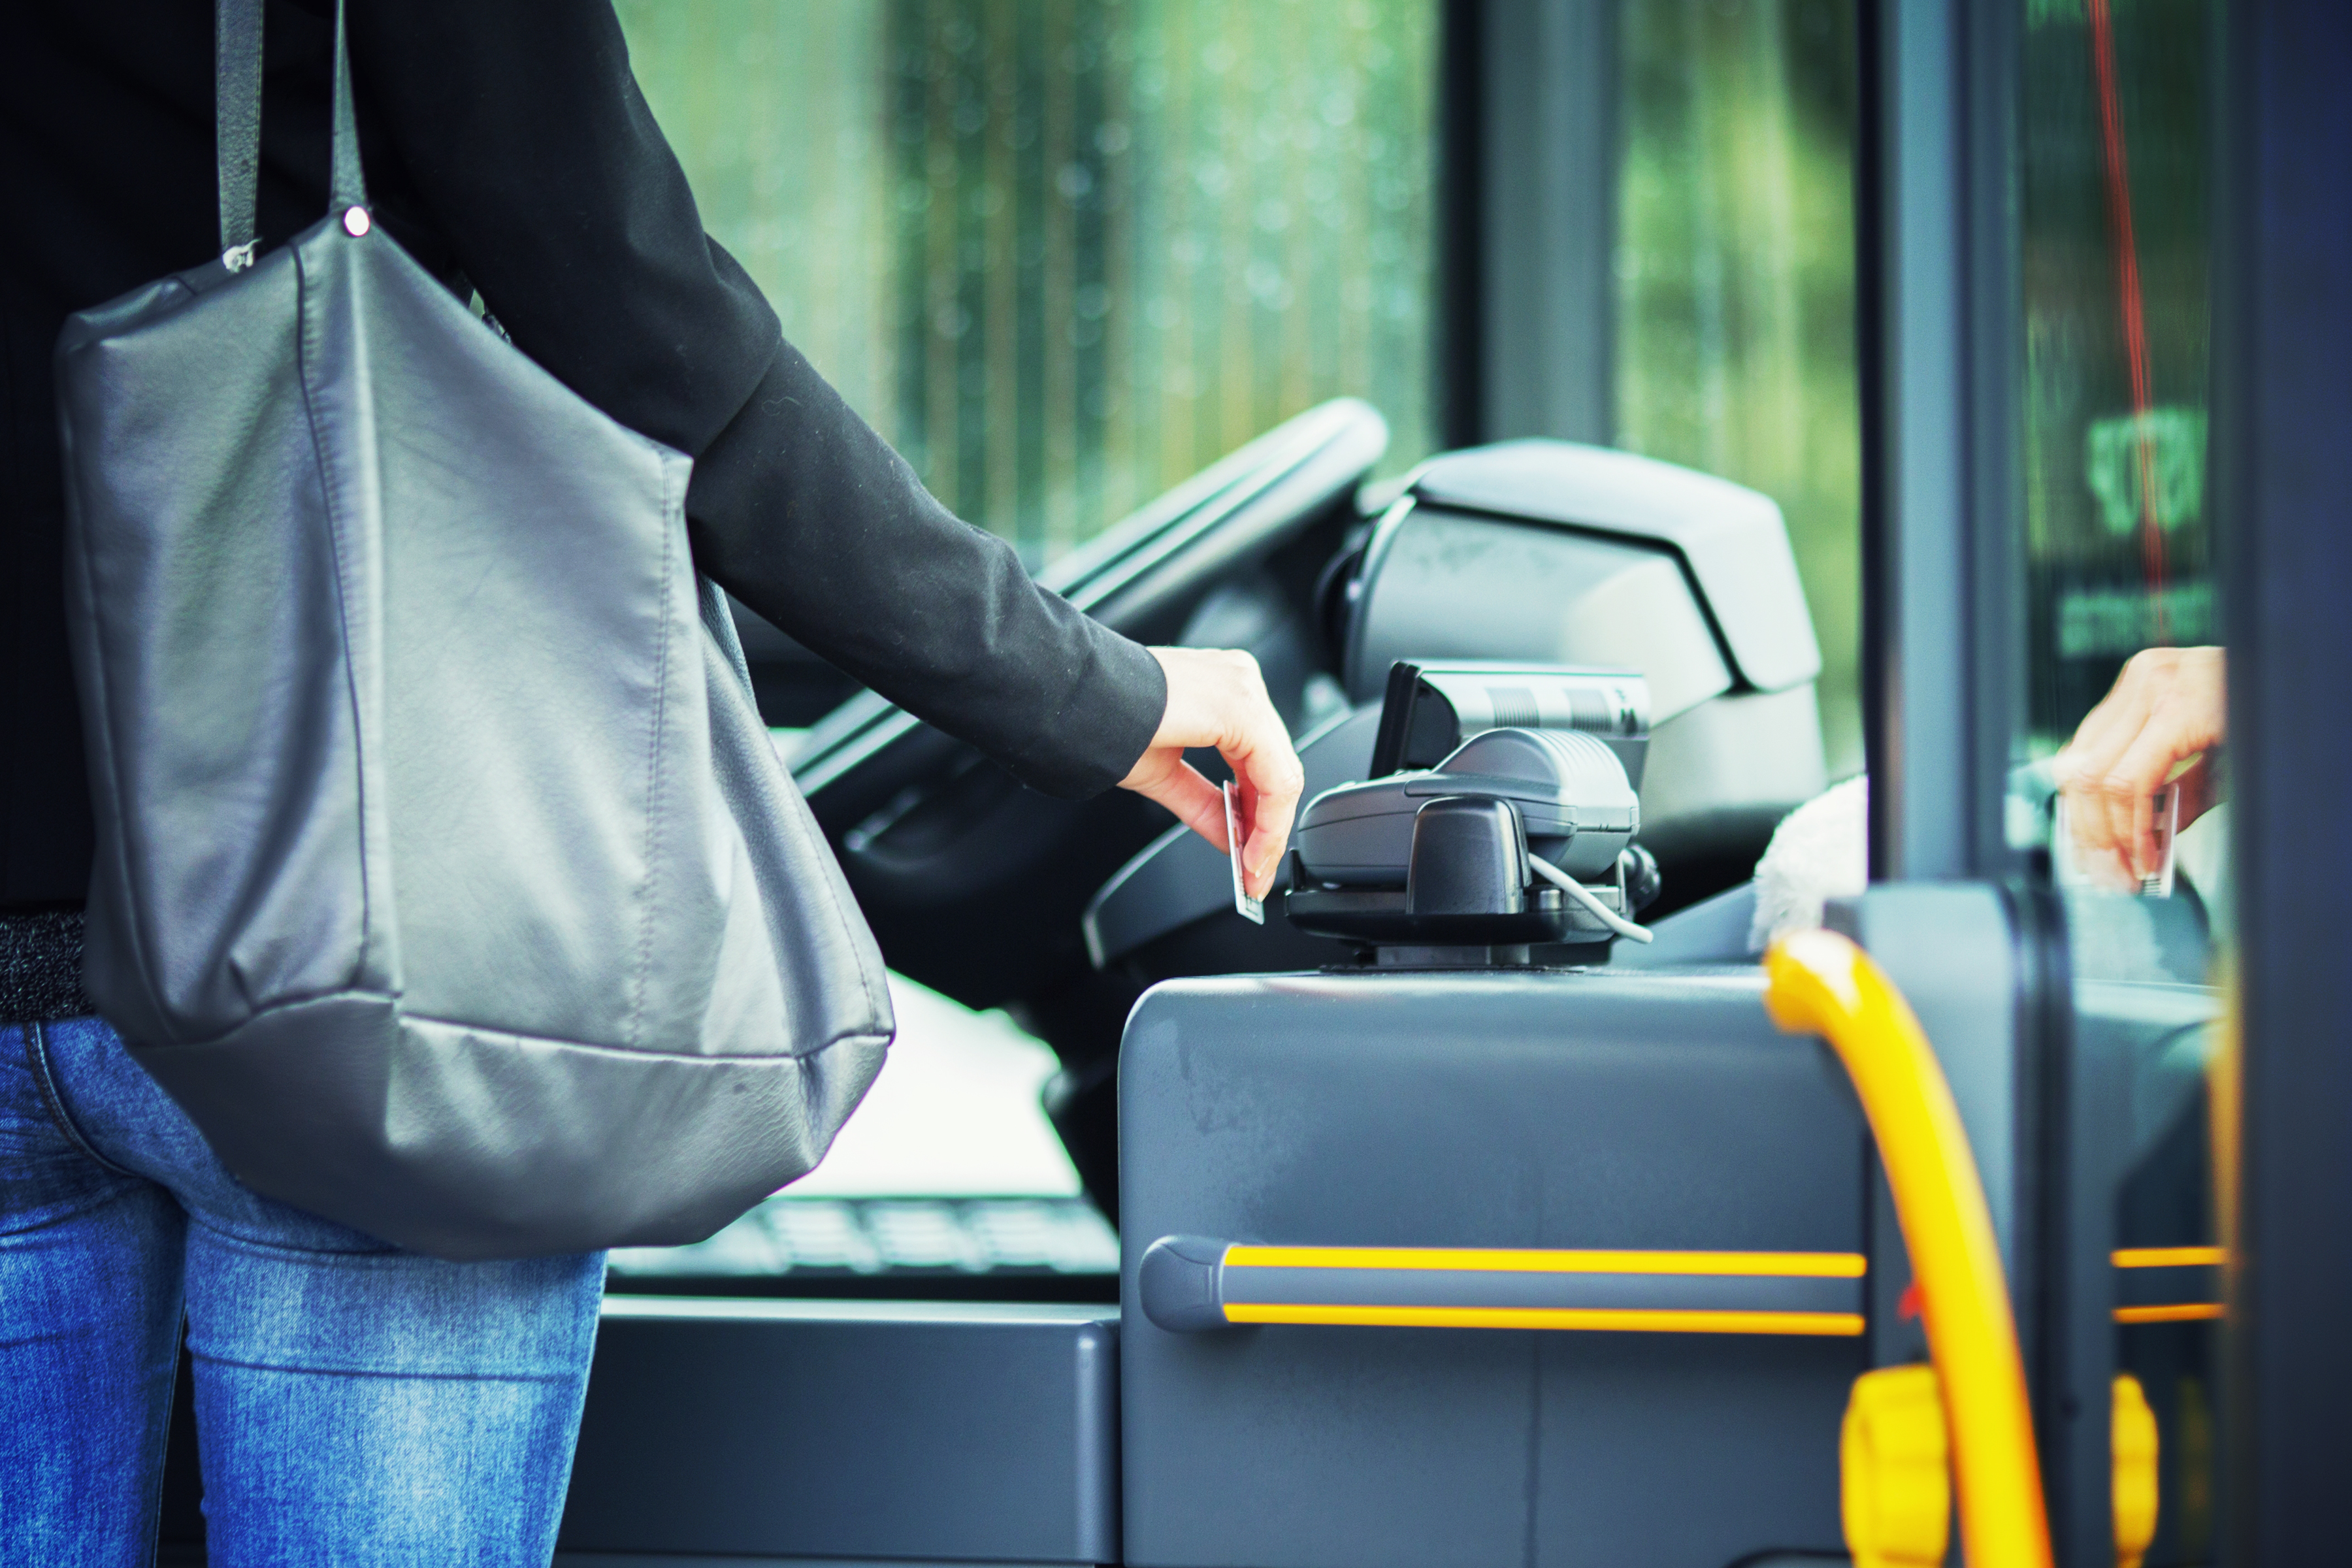 Contacless payment with RFID card on the public transportation.